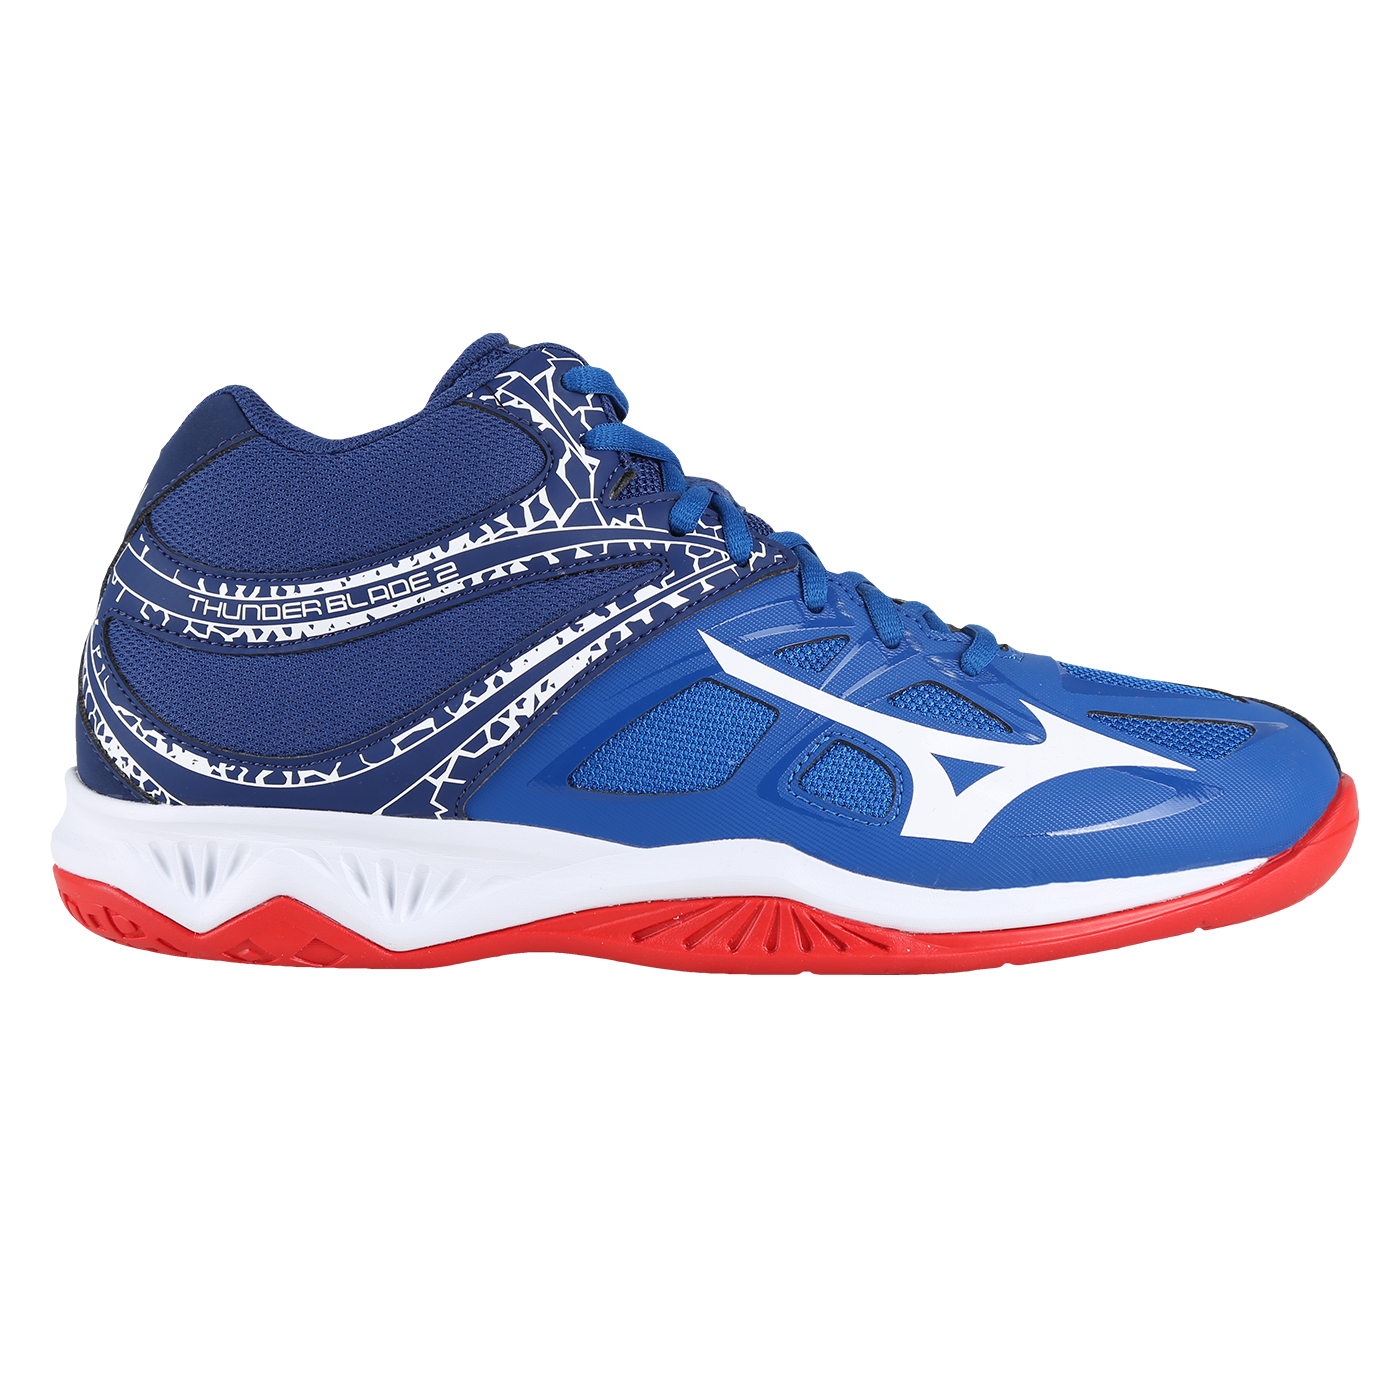 THUNDER BLADE 2 MID-SNORKEL BLUE/WHITE/HIGH RISK RED